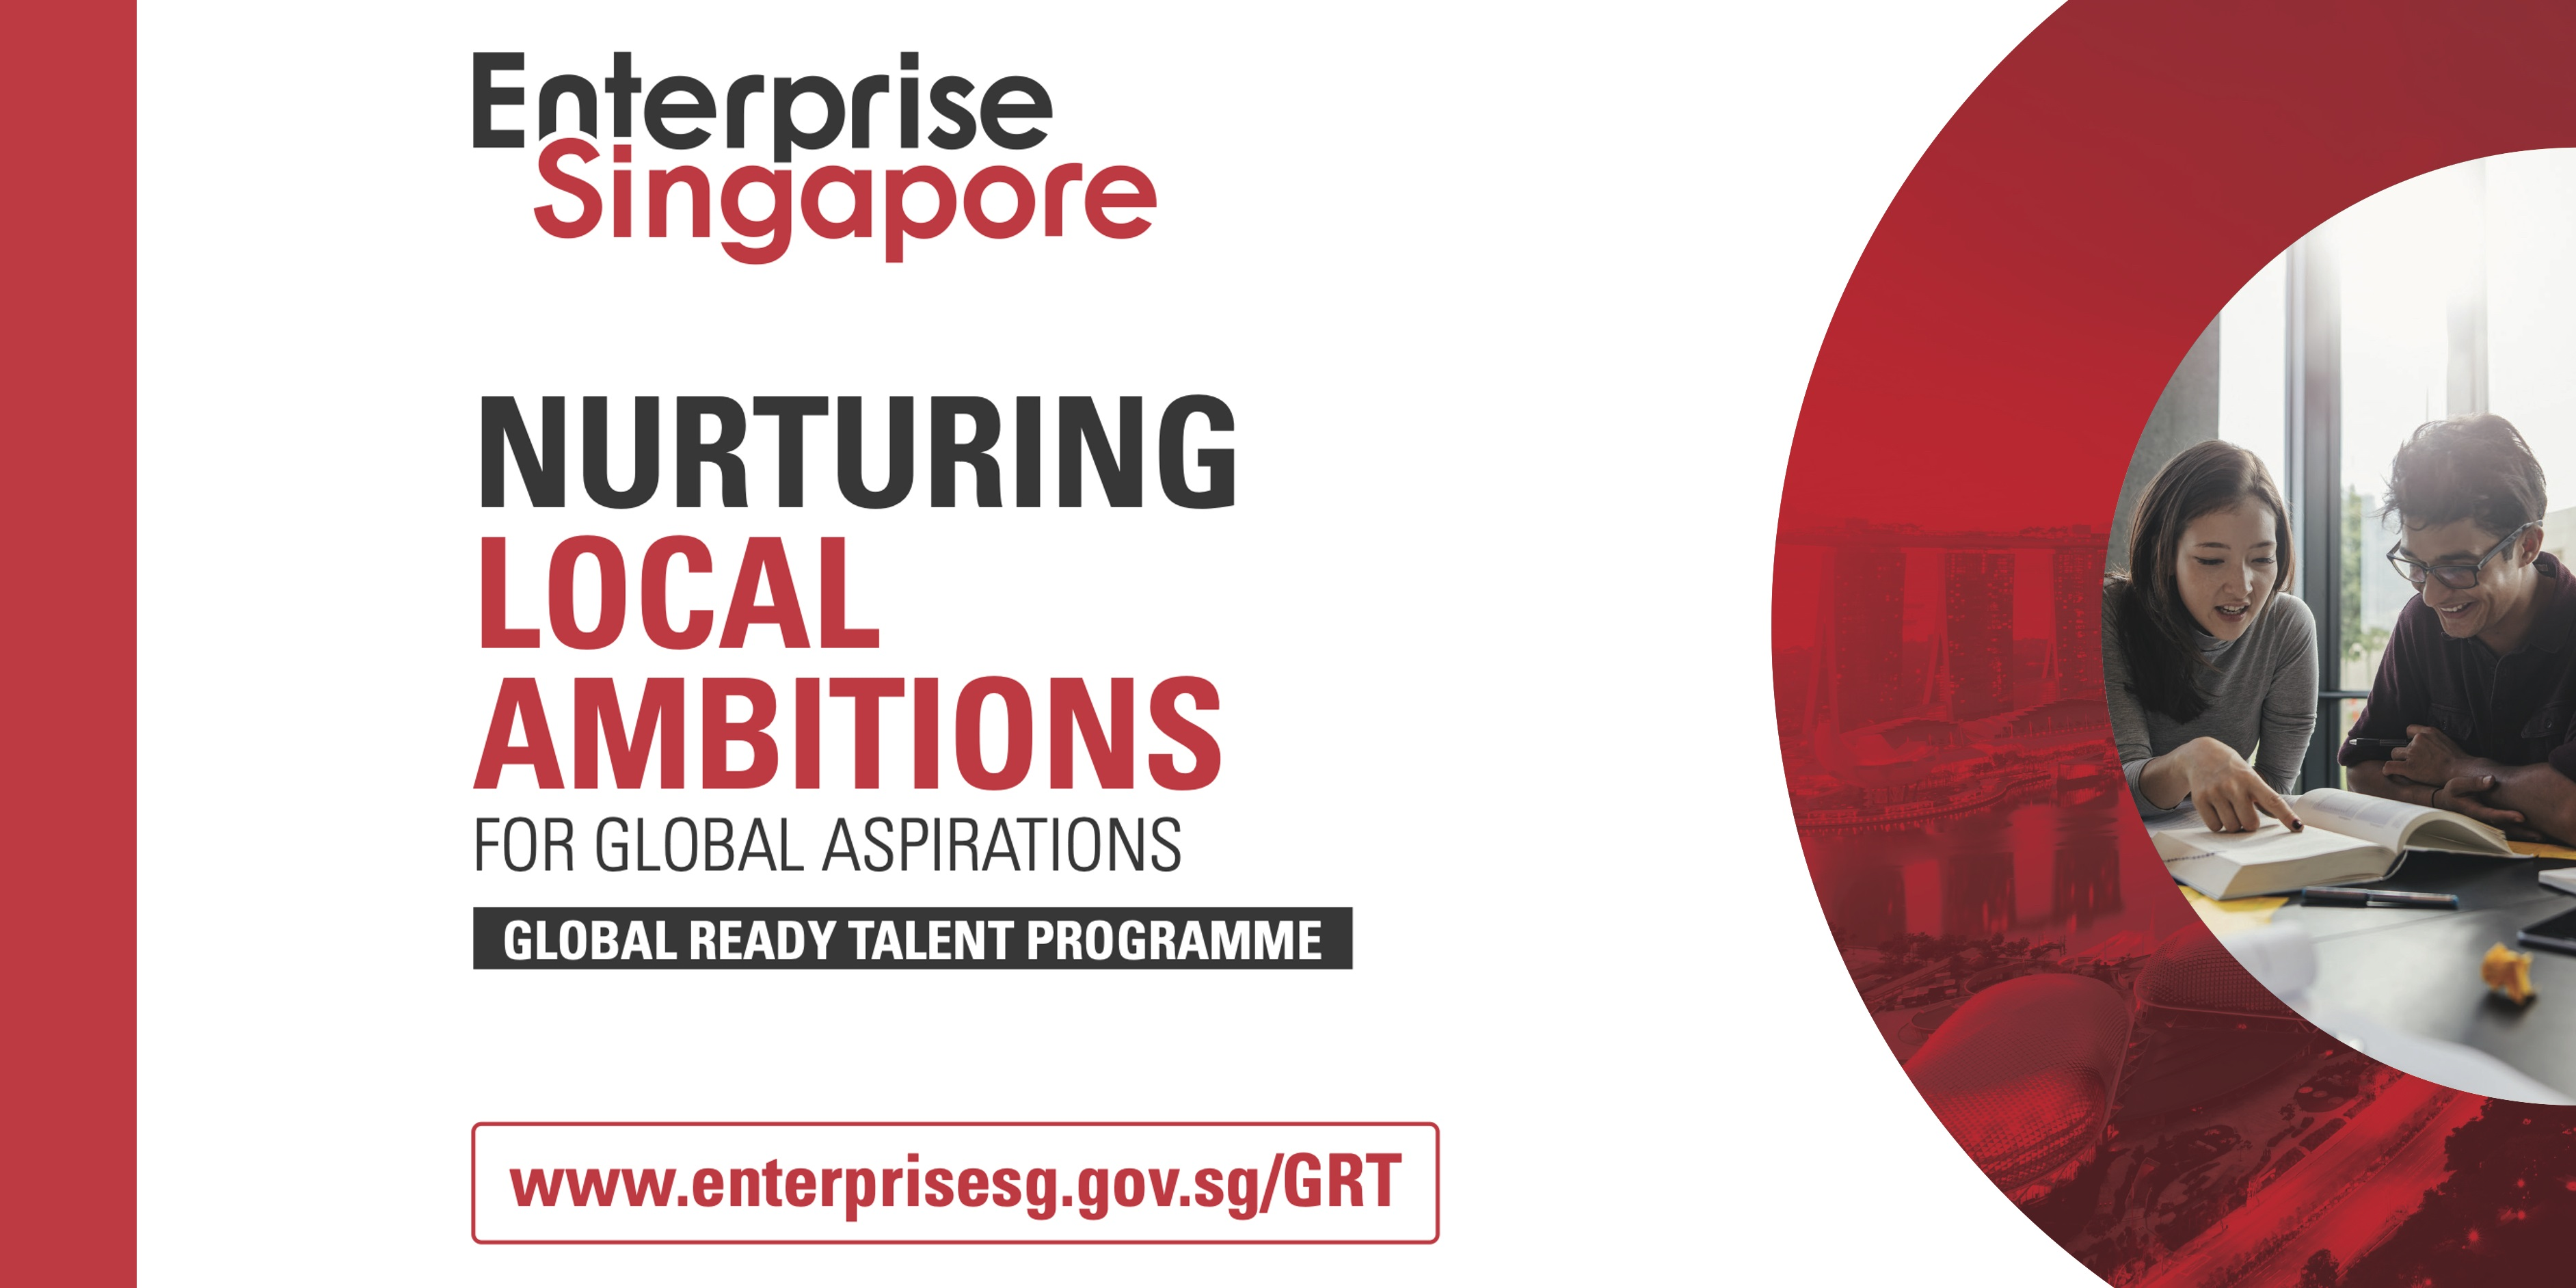 Global Ready Talent Programme